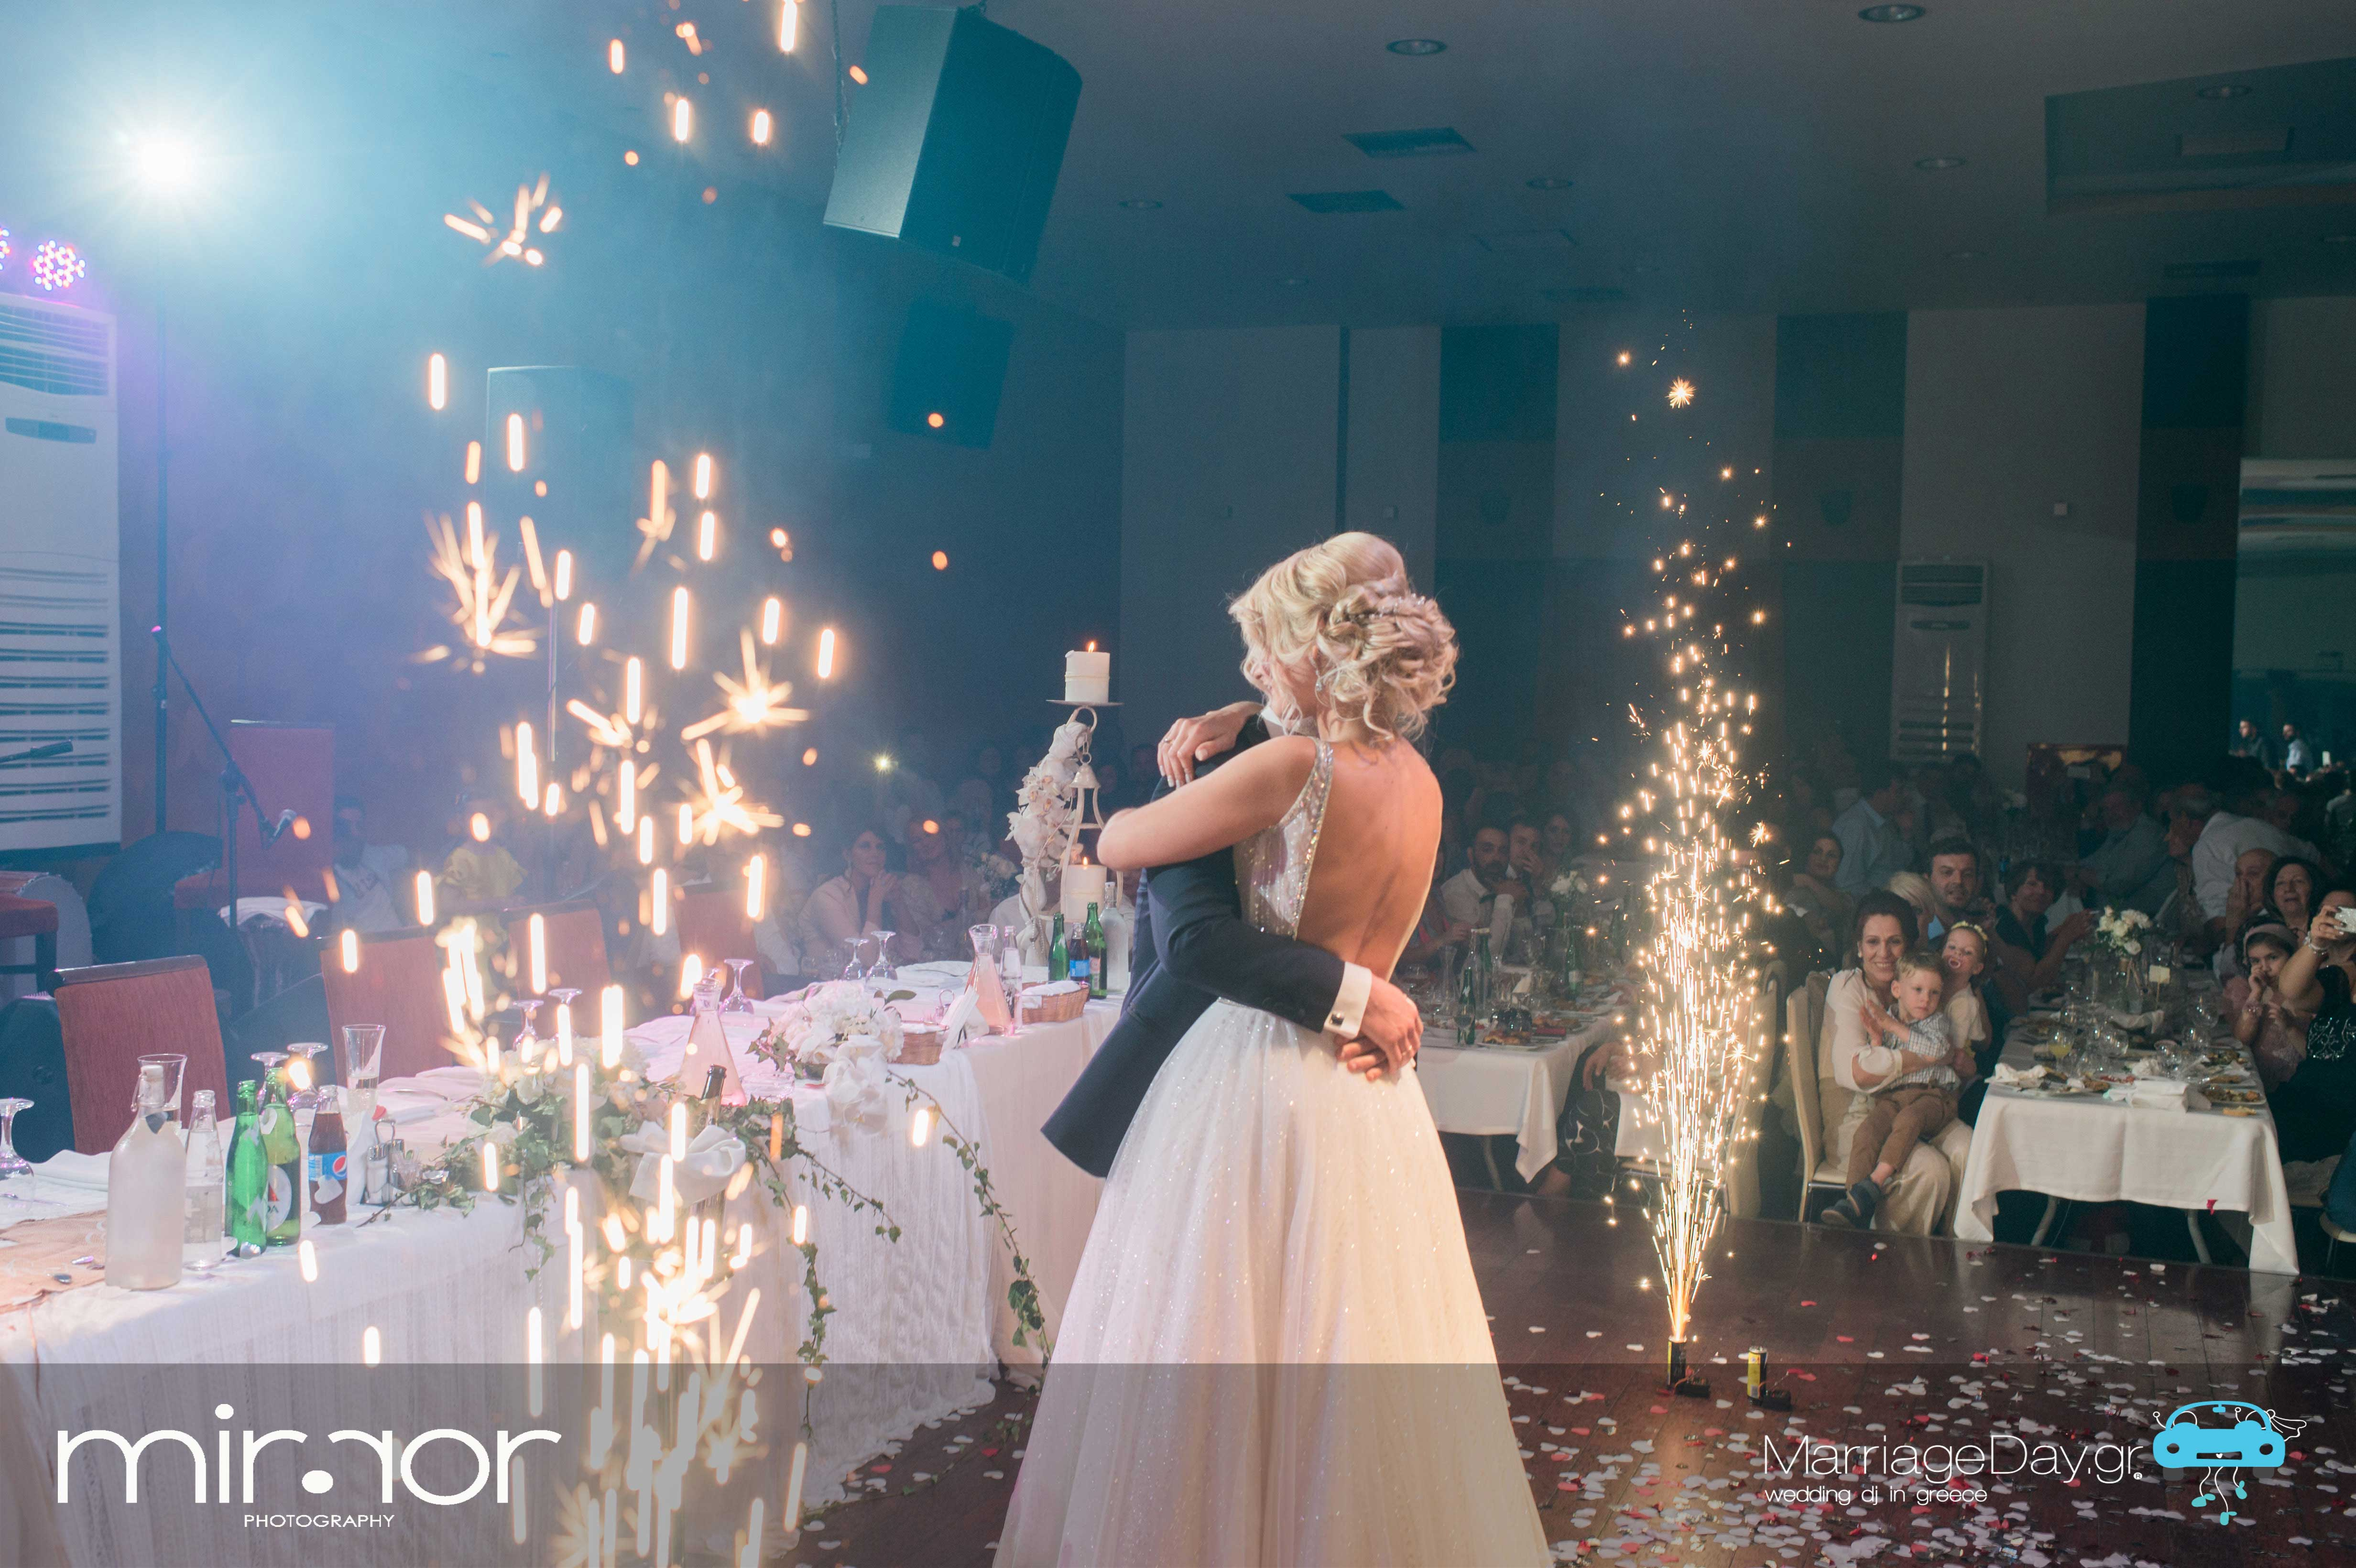 Marriageday.gr | Floor fountain | Impressive effect for first dance.